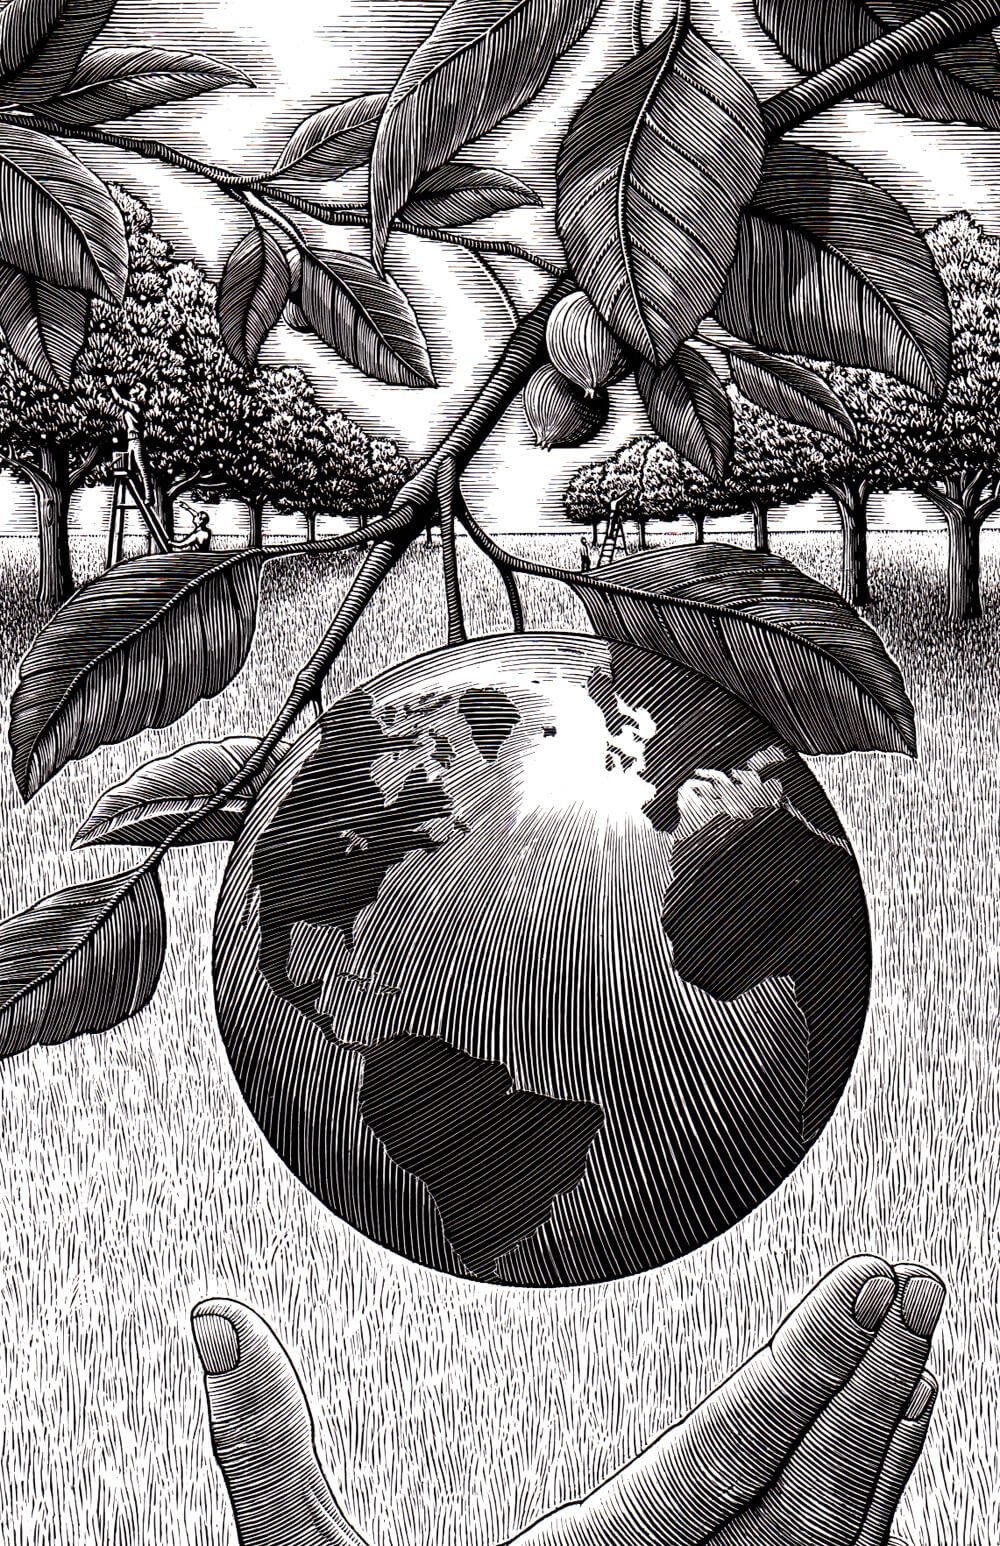 a Douglas Smith illustration, Earth as a fruit hanging from a tree